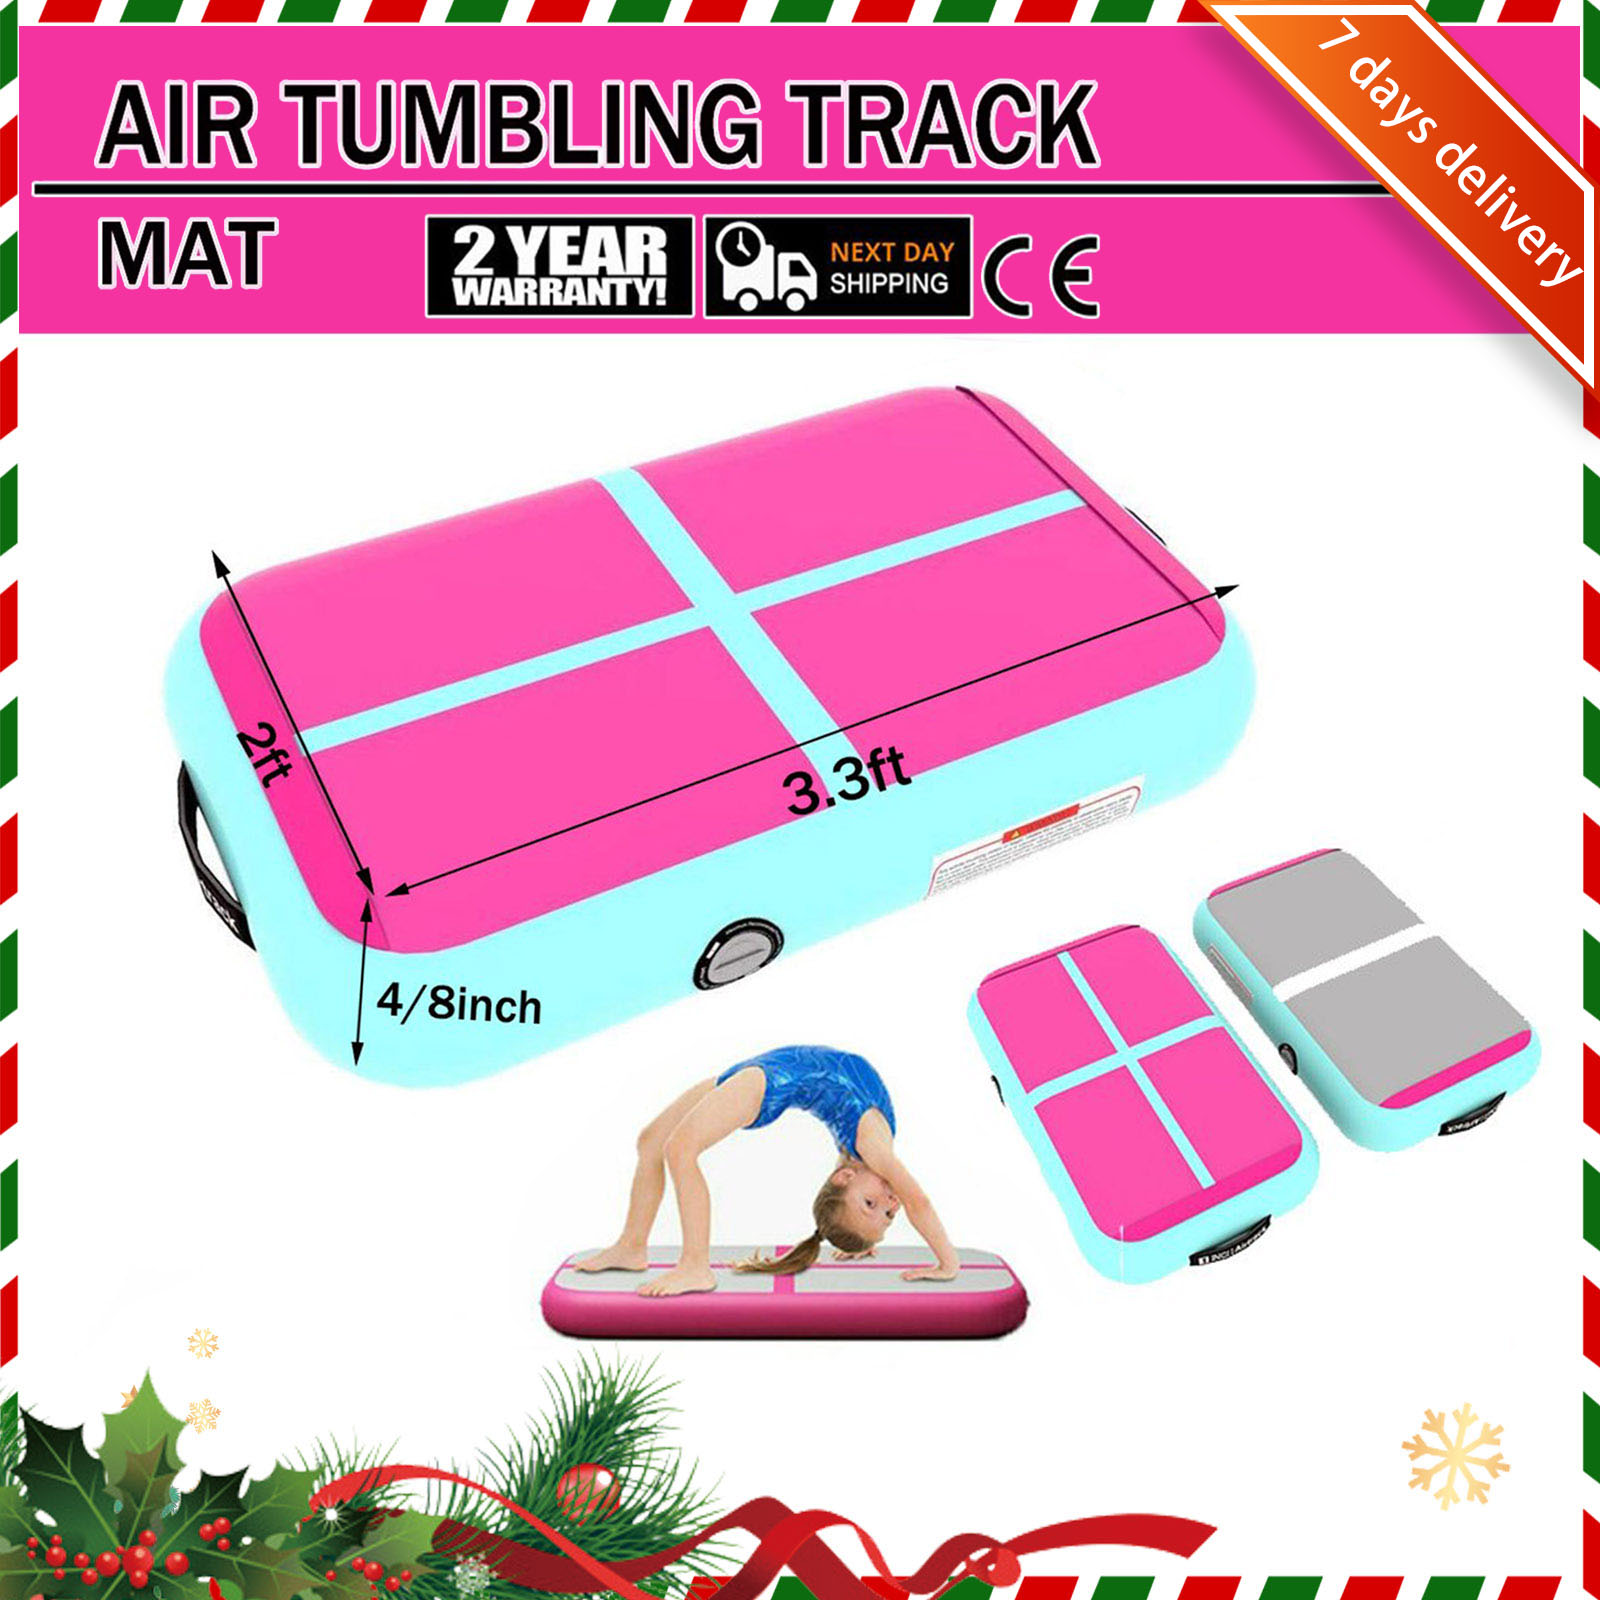 Rimdoc 1M Inflatable Gymnastics Airtrack Tumbling Air Track Floor Christmas Gift For Kids Olympics Gym Mat Air Tumble Track Home